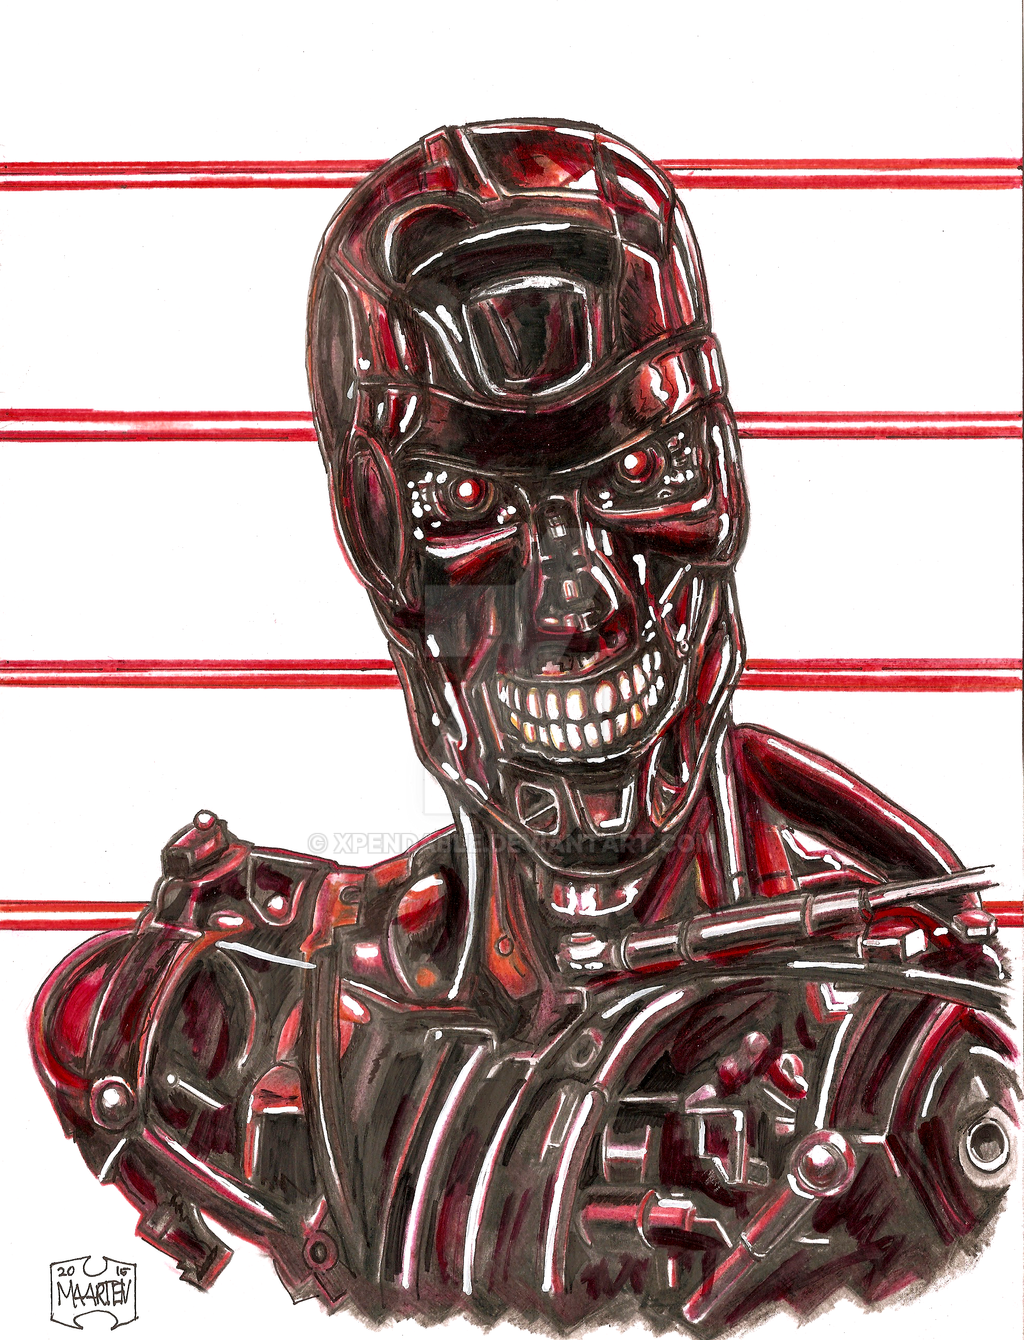 T800 -workcamp- by Xpendable